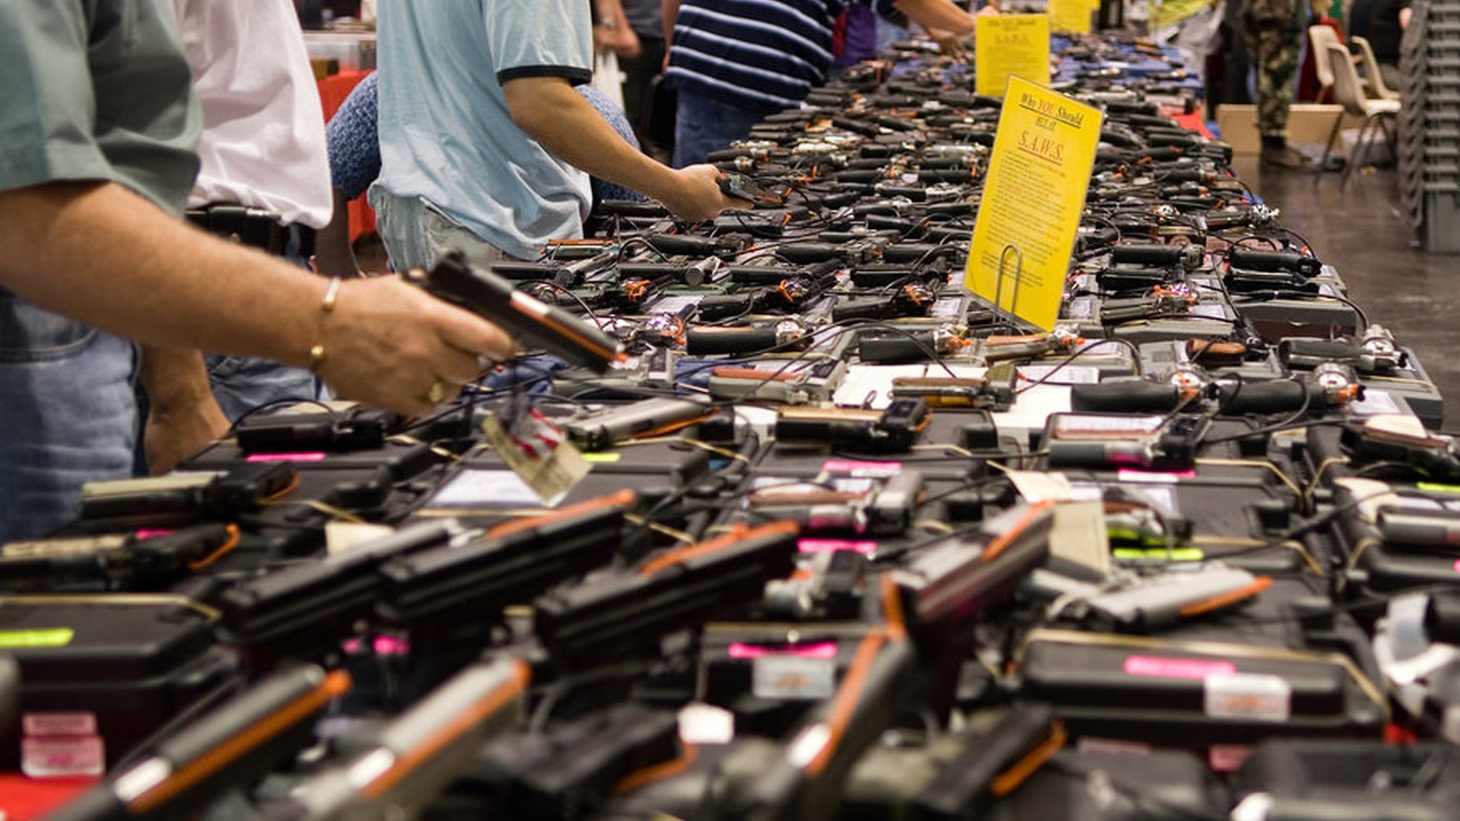 Researchers at UC Davis are looking into gun violence, something researchers at the federal level have been unable to do because of the heated politics around guns. What are they investigating?